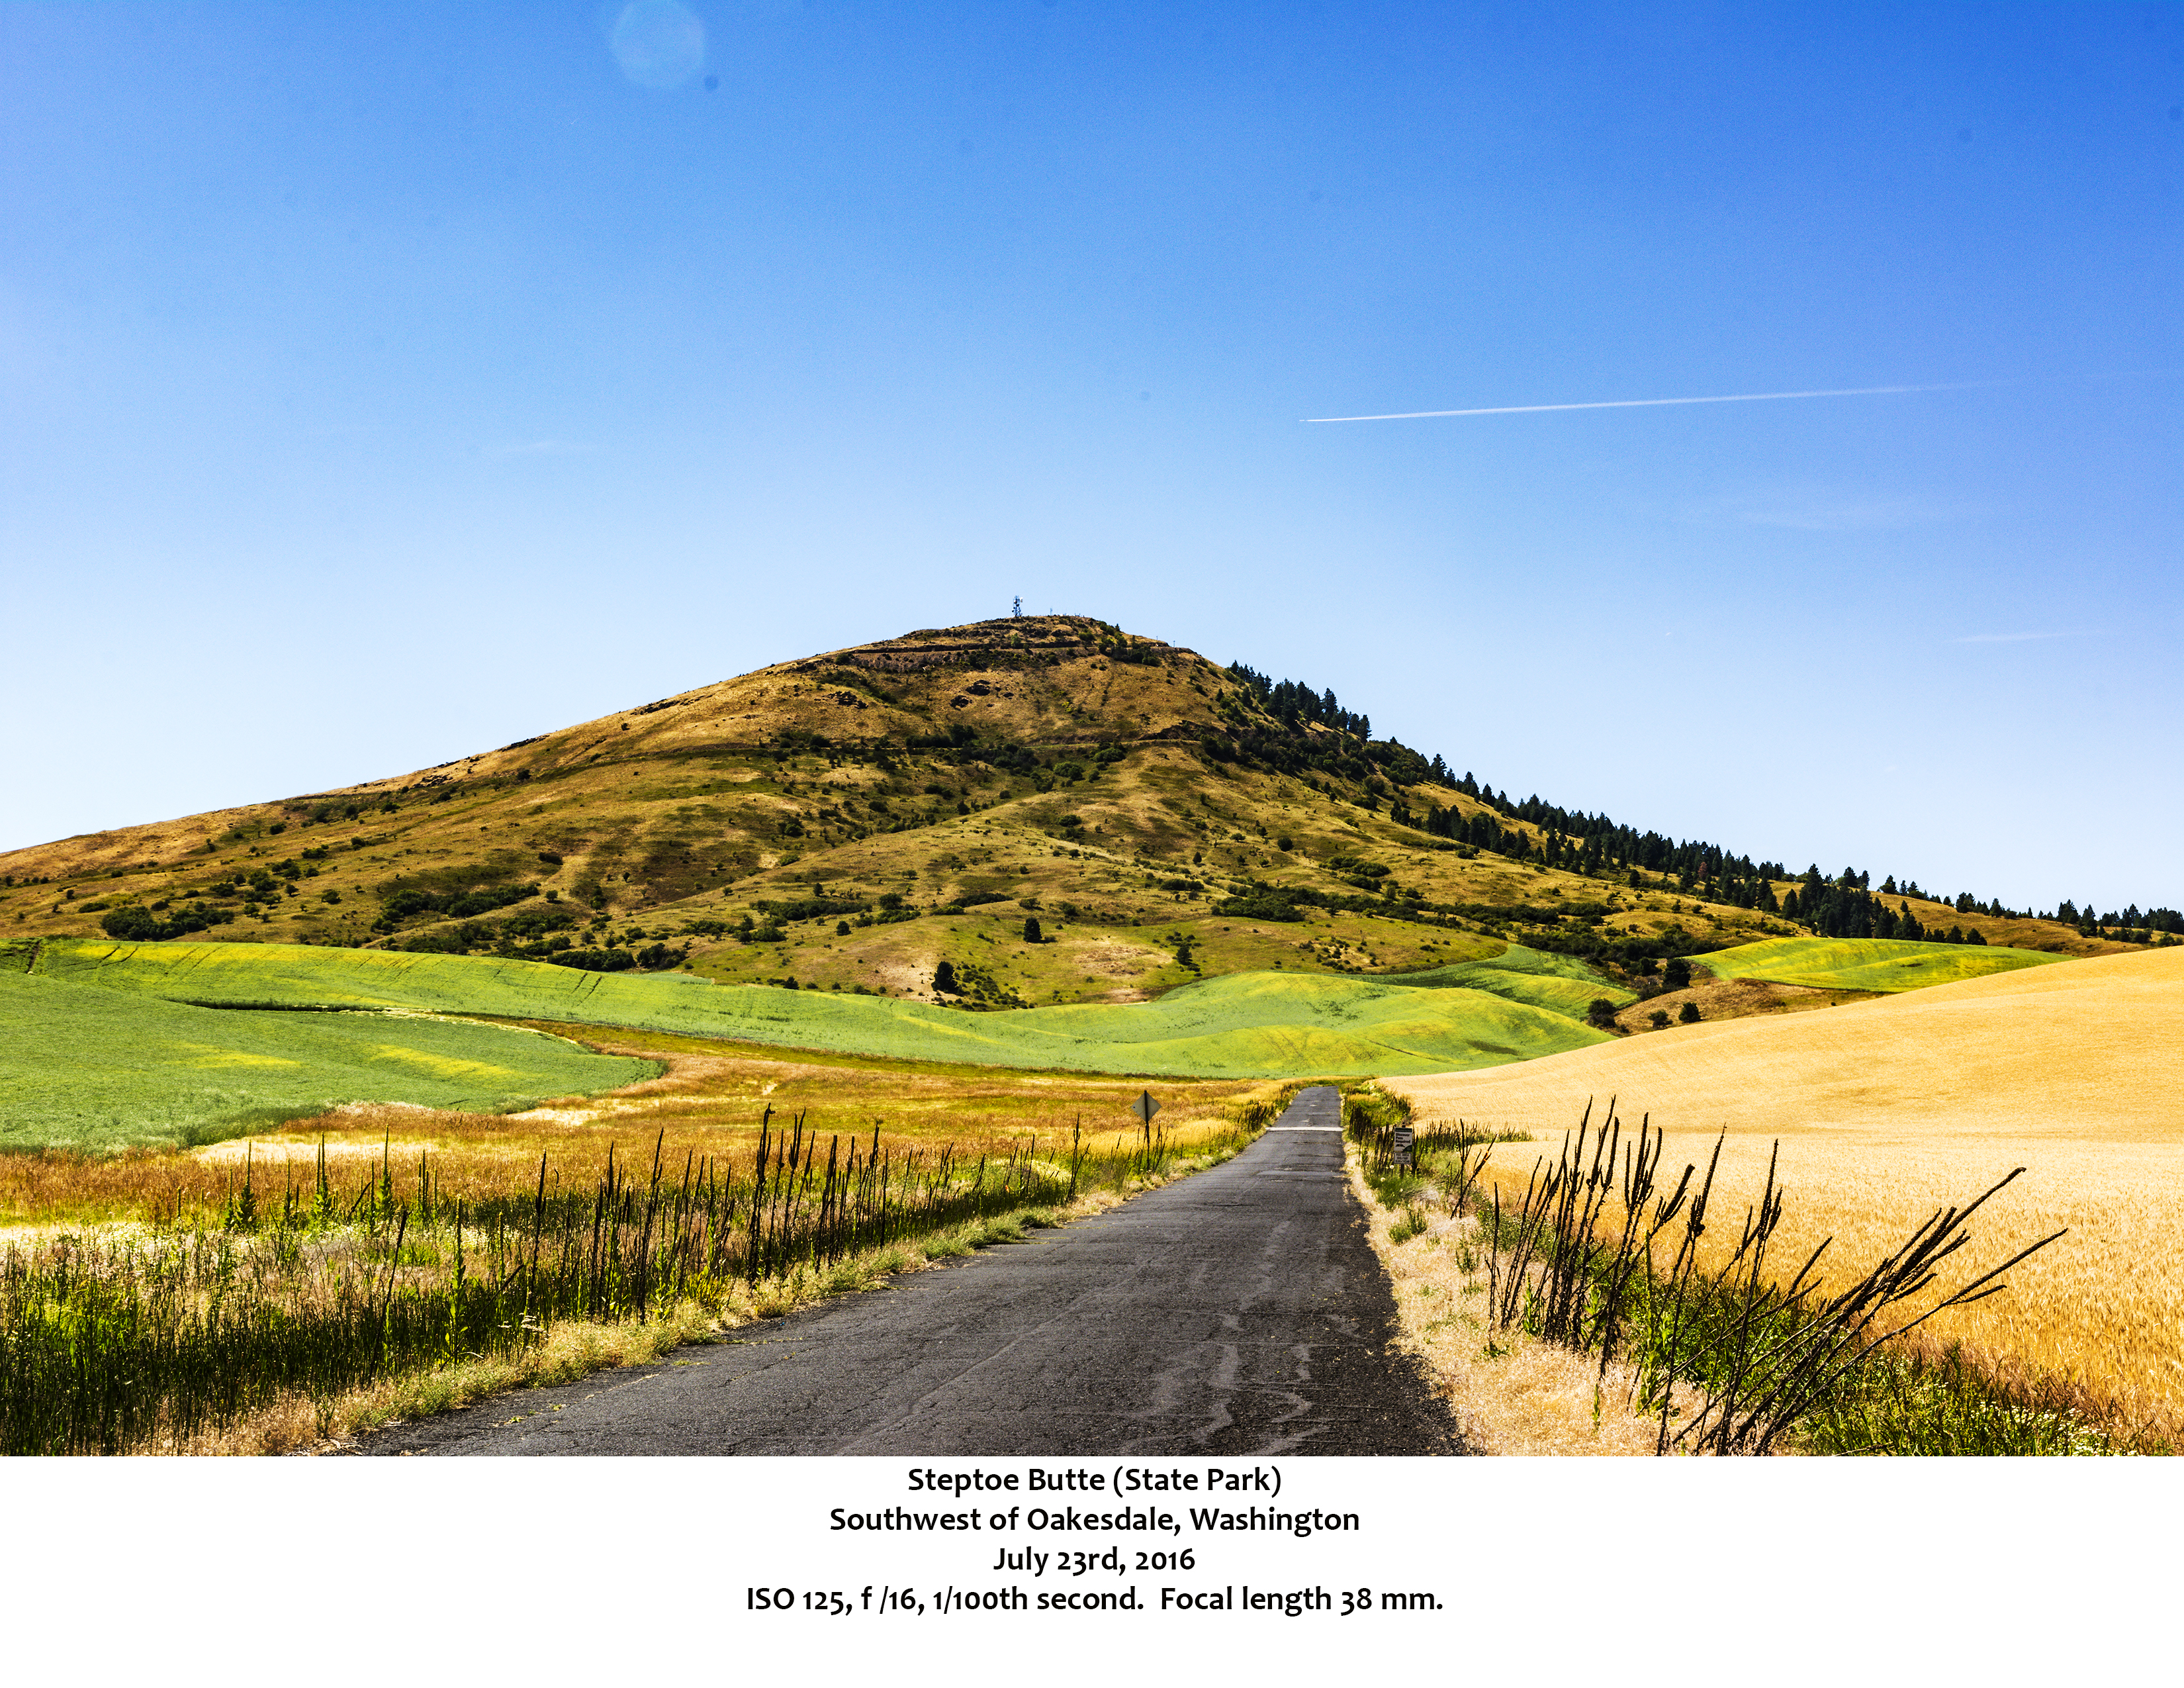 Steptoe Butte State Park